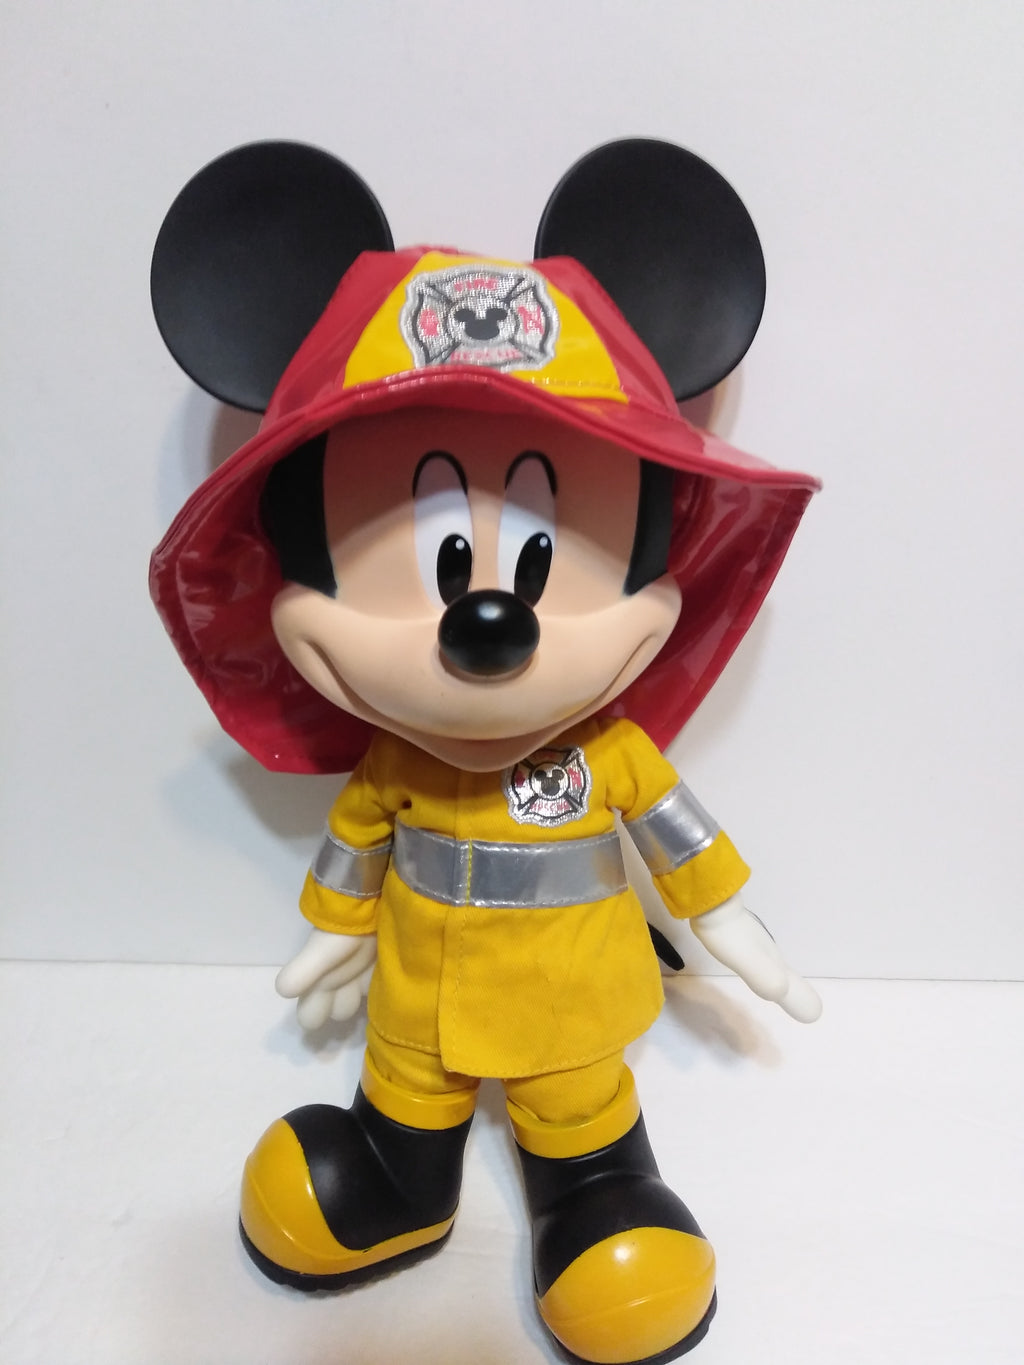 Mickey Mouse Clubhouse Talking Fireman Rescue Doll - We Got Character